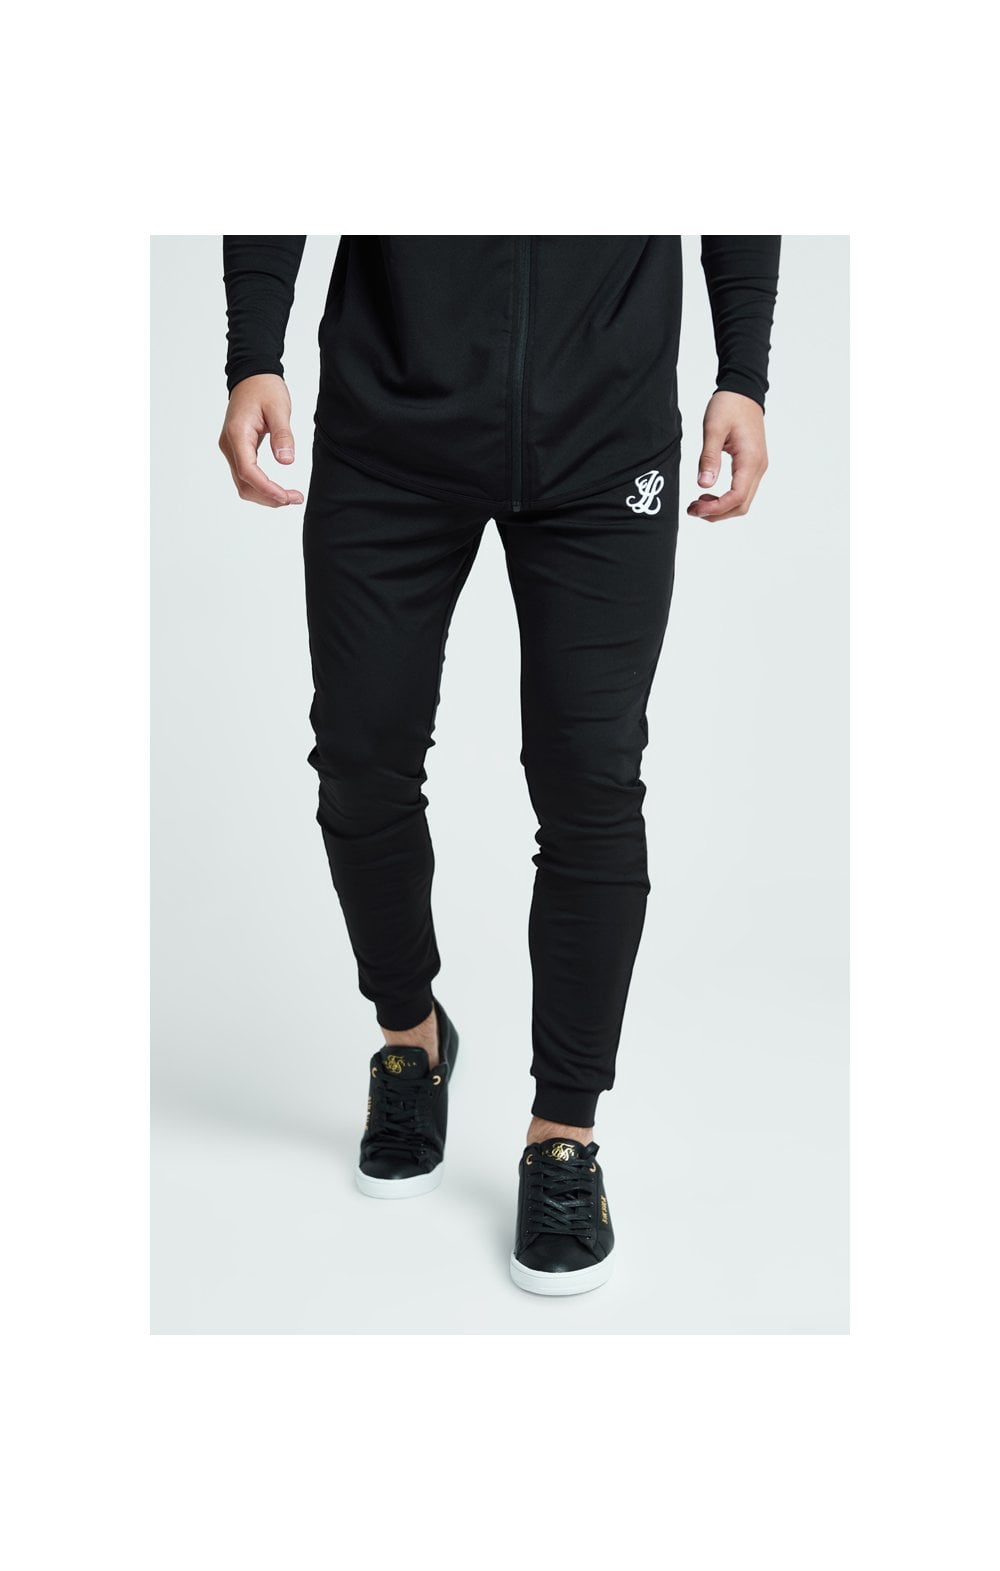 Load image into Gallery viewer, Illusive London Core Fitted Joggers - Black